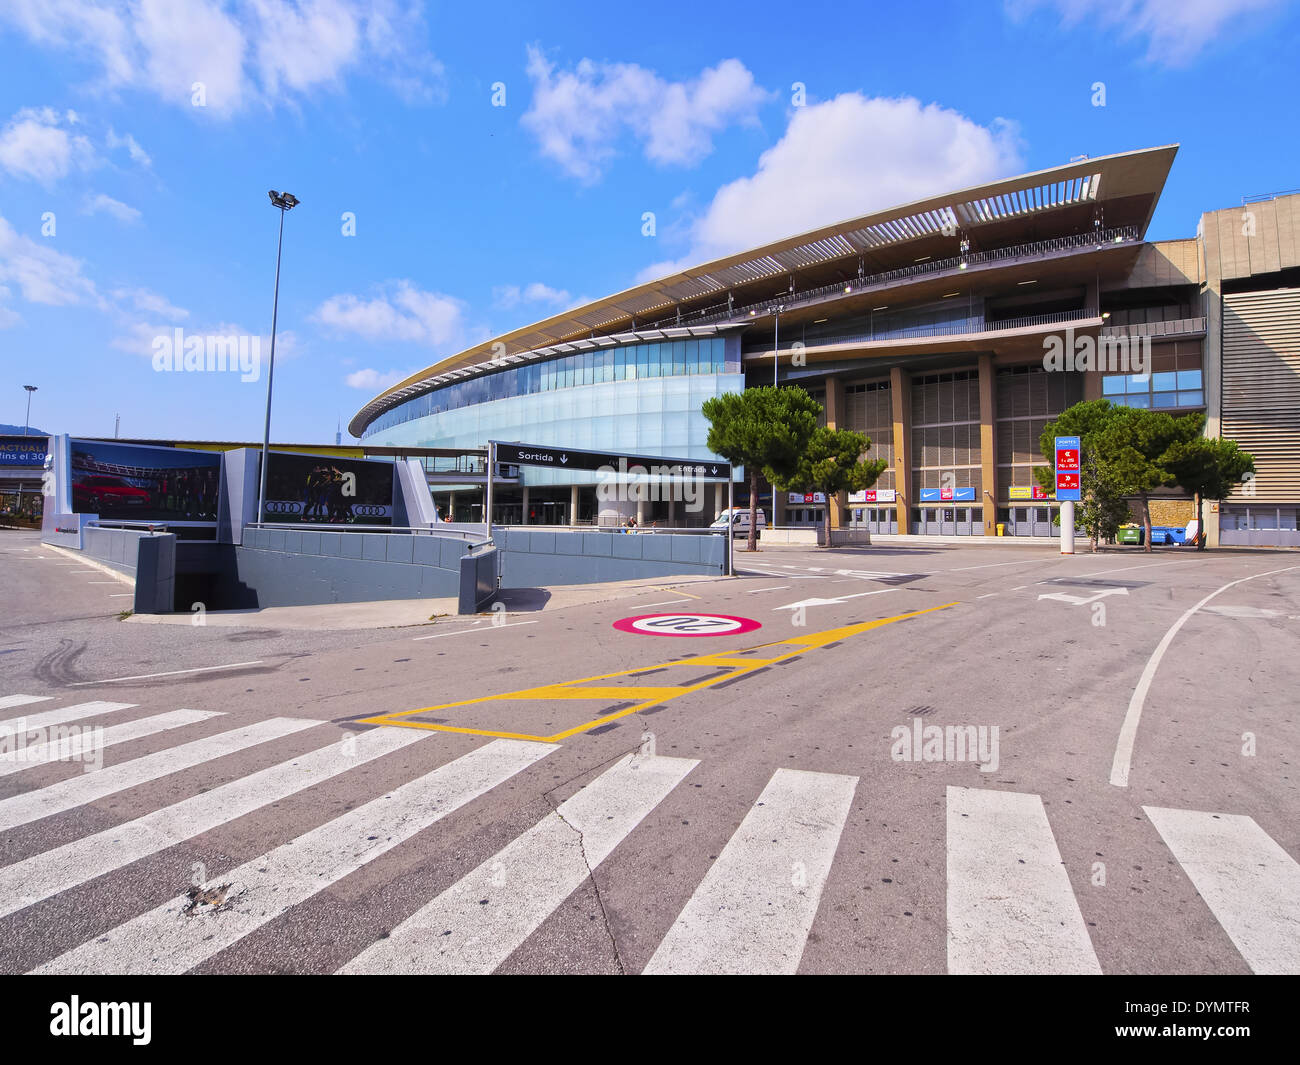 Estadi del F.C. Barcelona - Camp Nou - a football stadium in Barcelona, Catalonia, Spain Stock Photo